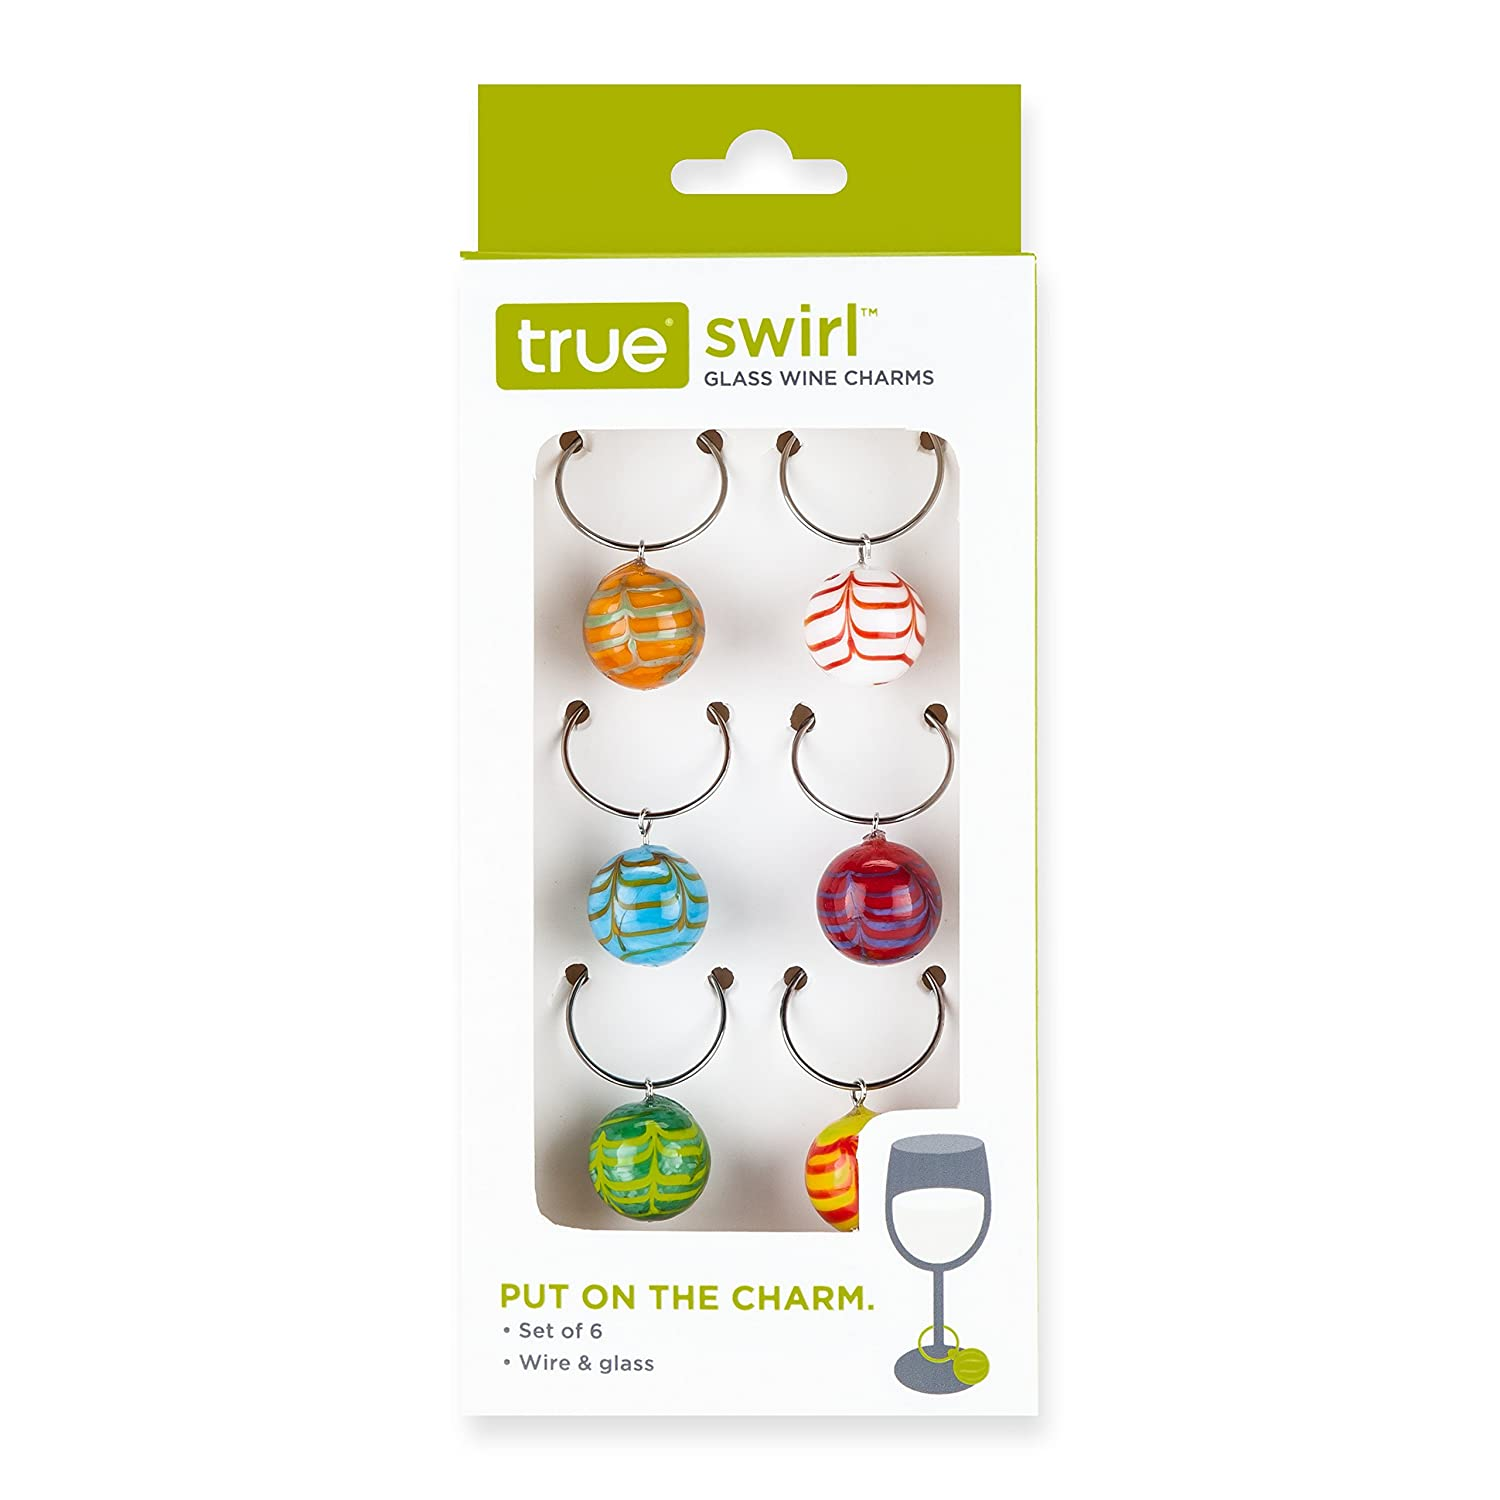 Swirly Mulii-Colored Glass Balls Wine Glass Stem Charms (Set of 6)